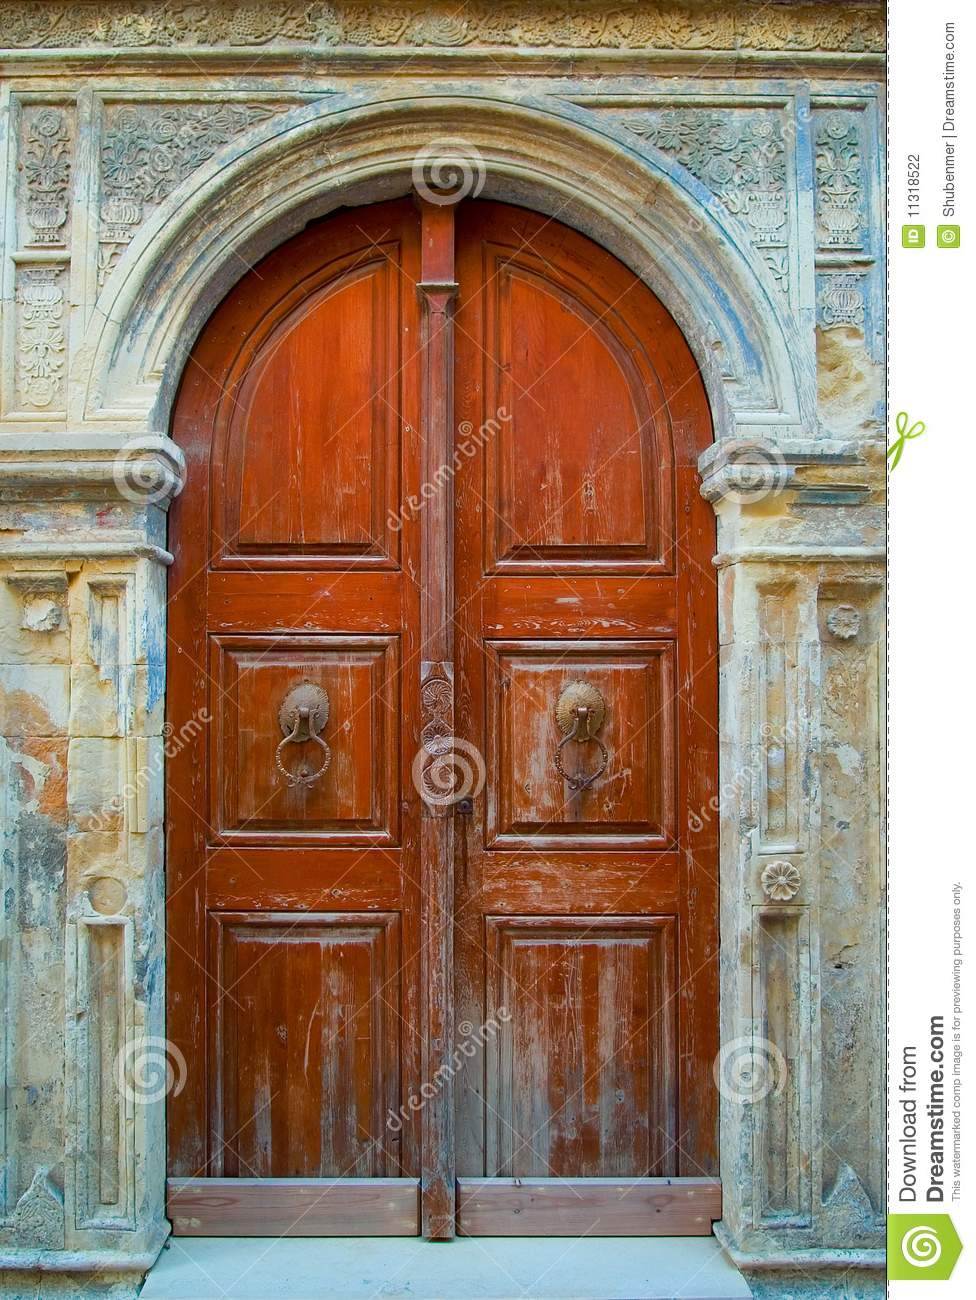 Old Wooden Door Stock Photo Image Of Medieval Outdoors 11318522